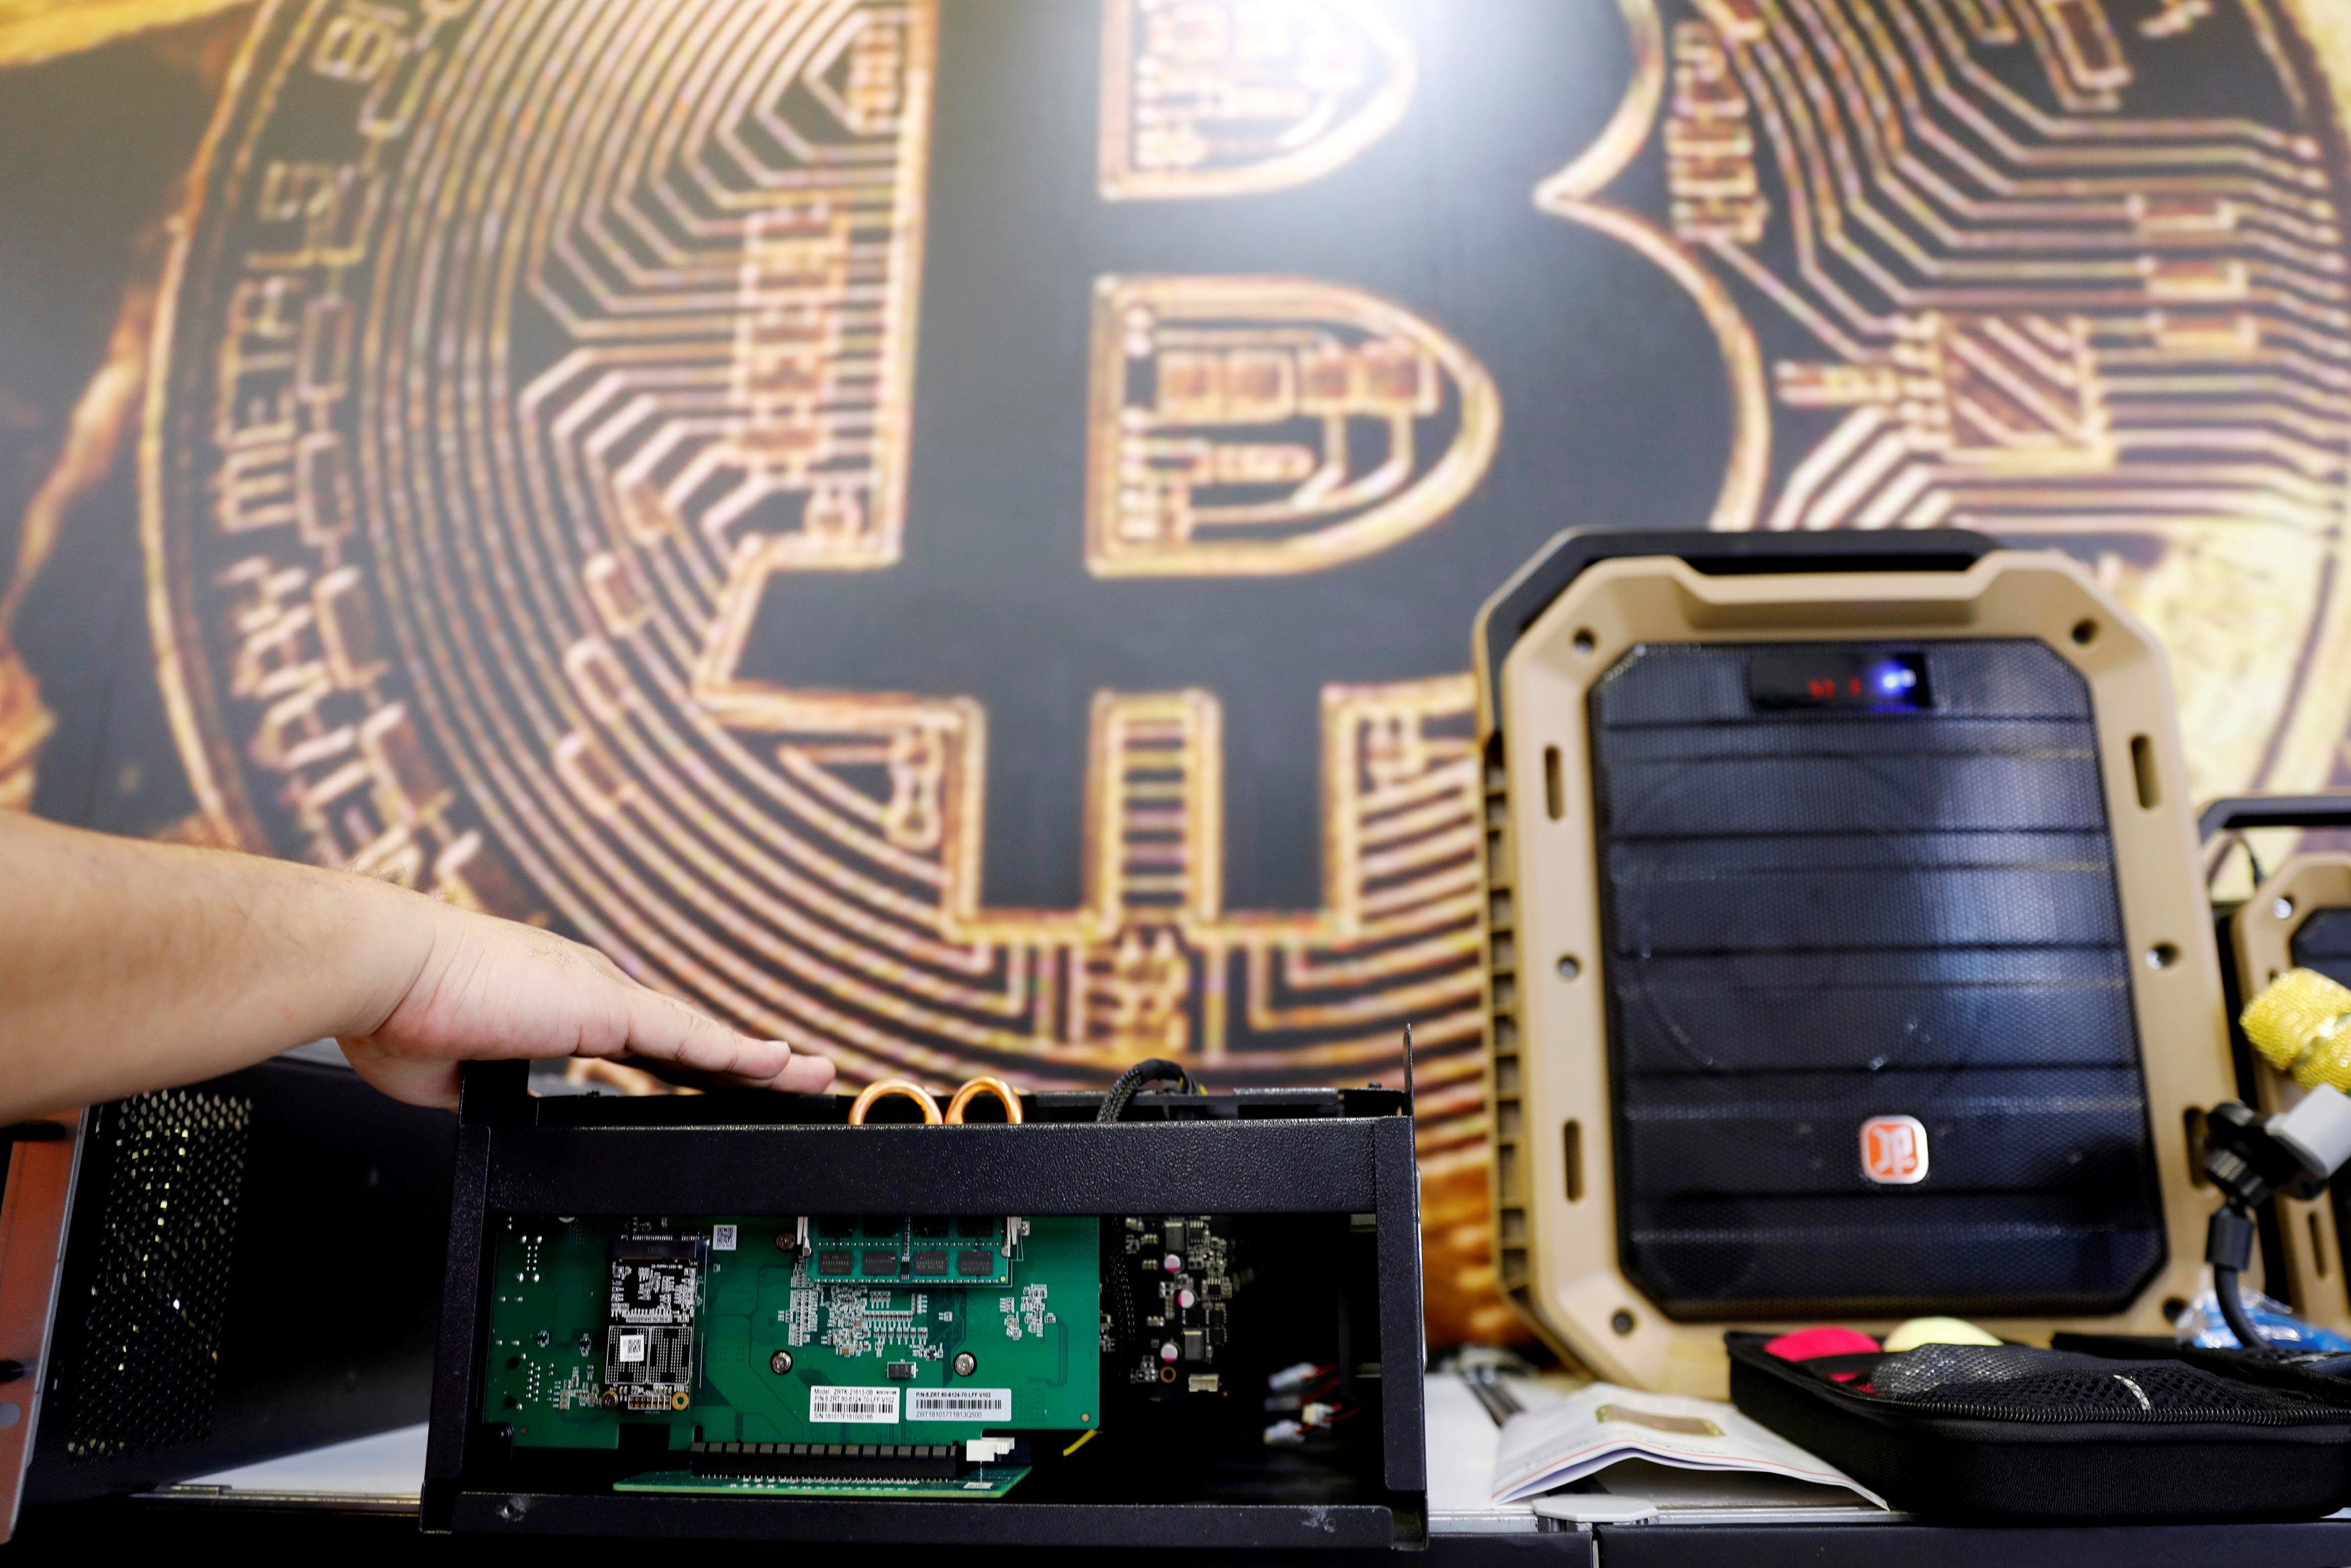 China's central bank recruiting cryptography experts to help develop